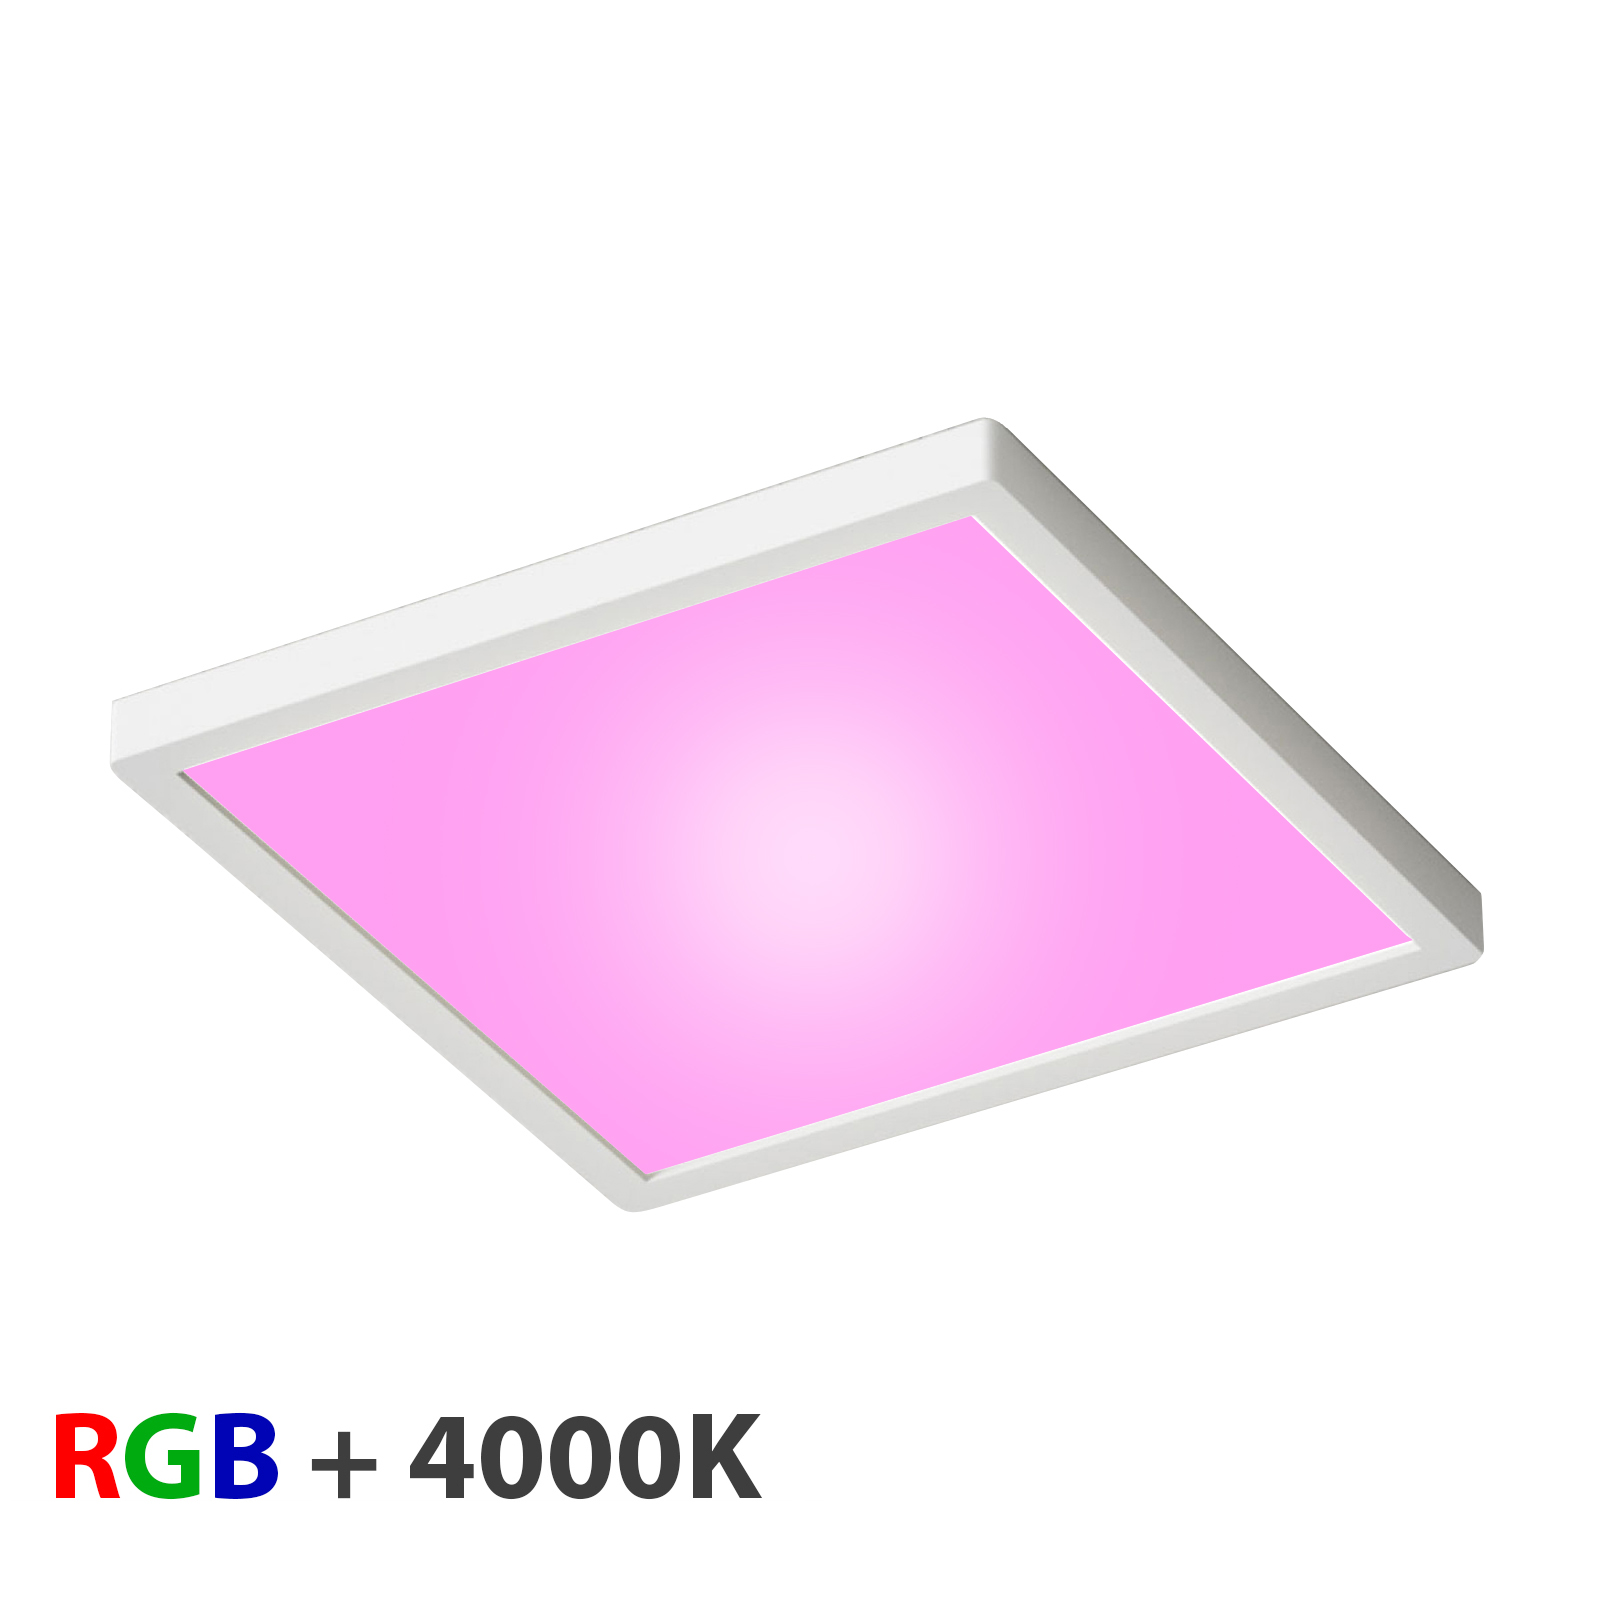 Ceiling light LED ceiling slim 55W light RGBW 4000K chromo dimmable 24V